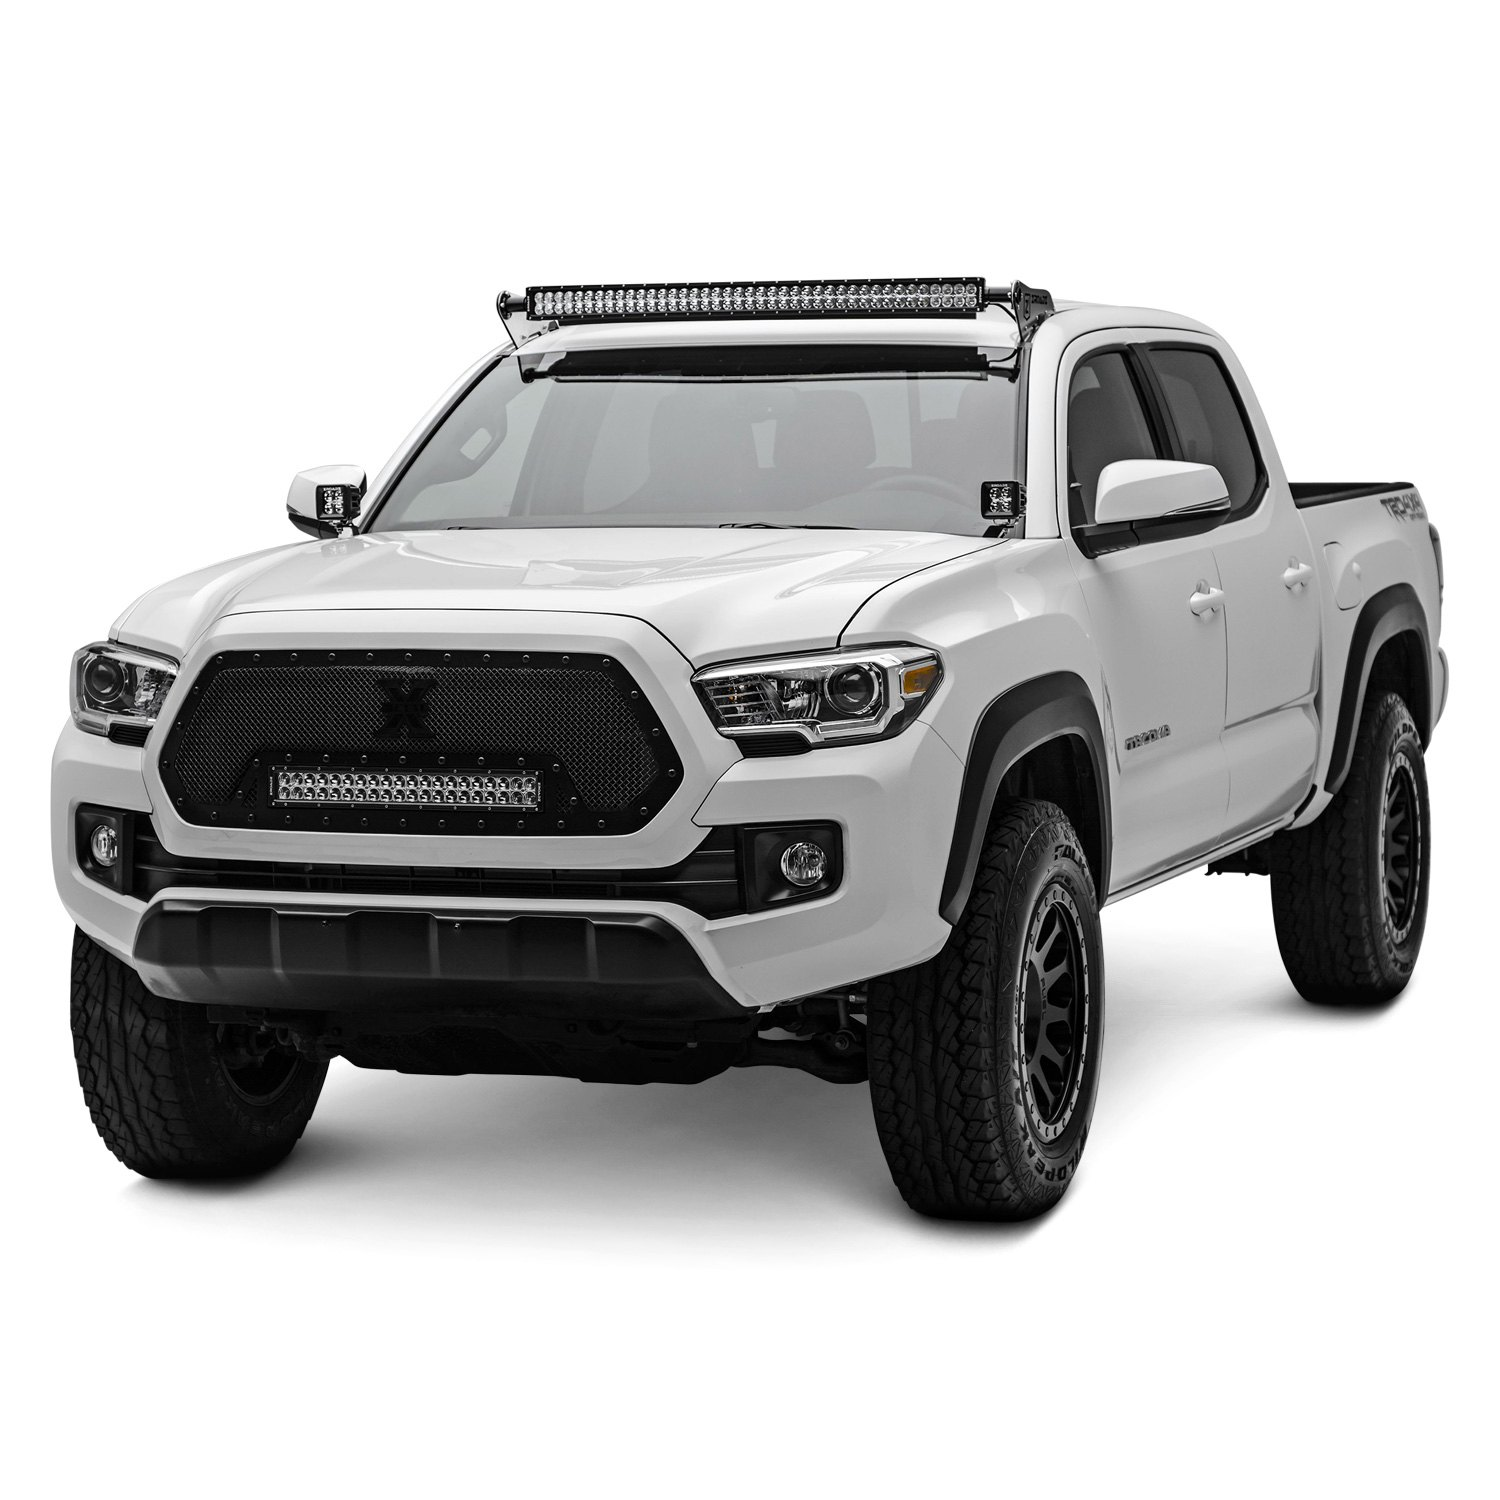 Led Fog Lights likewise Push Black 9244572 in addition Zroadz Roof Mounted Led Lights 212262970 moreover Oem Audio Plus For 2016 2017 Toyota Ta a Access Cab Reference 450q together with 2019 Toyota 4runner Trd Pro Release Date And Review. on toyota tacoma audio